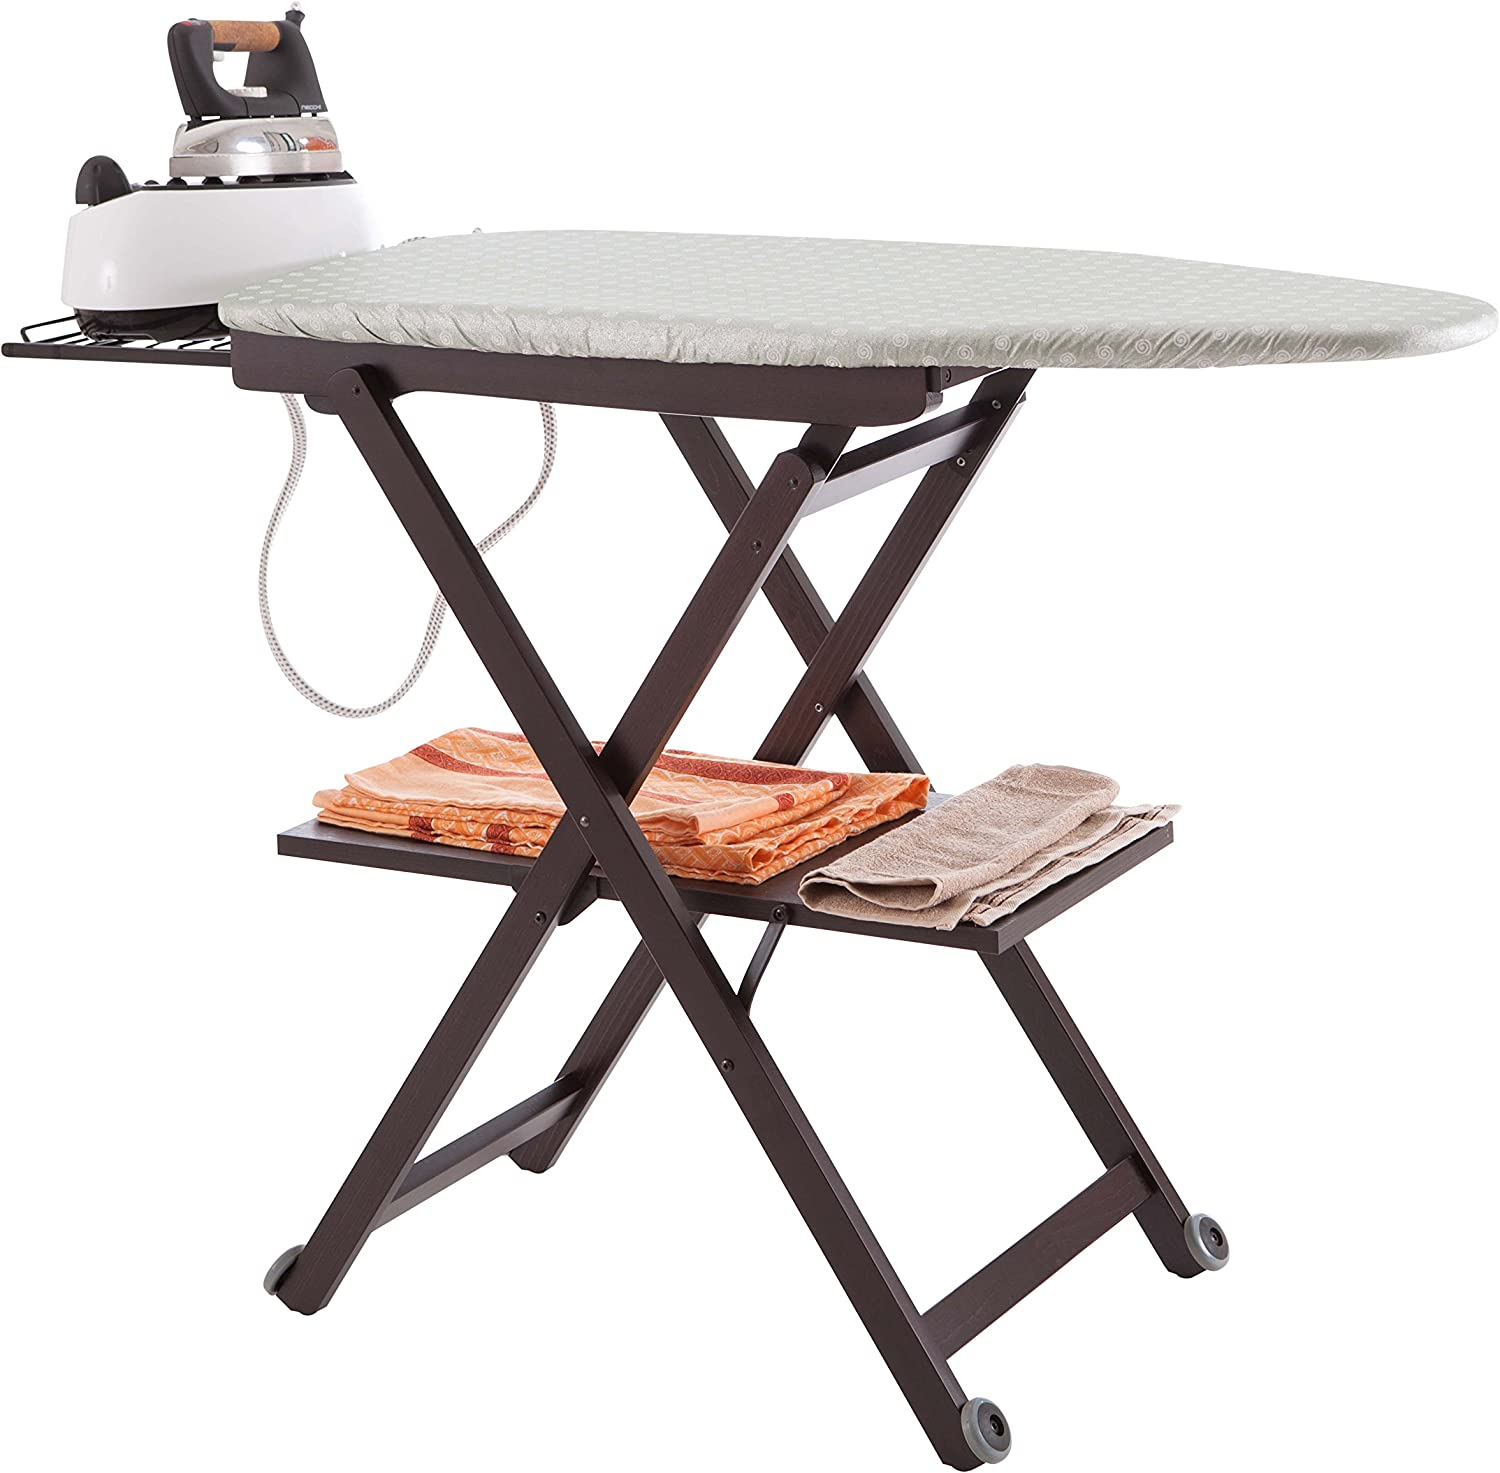 Arredamenti Italia AR_IT- 621 STIROCOMODO adjustable ironing board finishing cherry. Brown